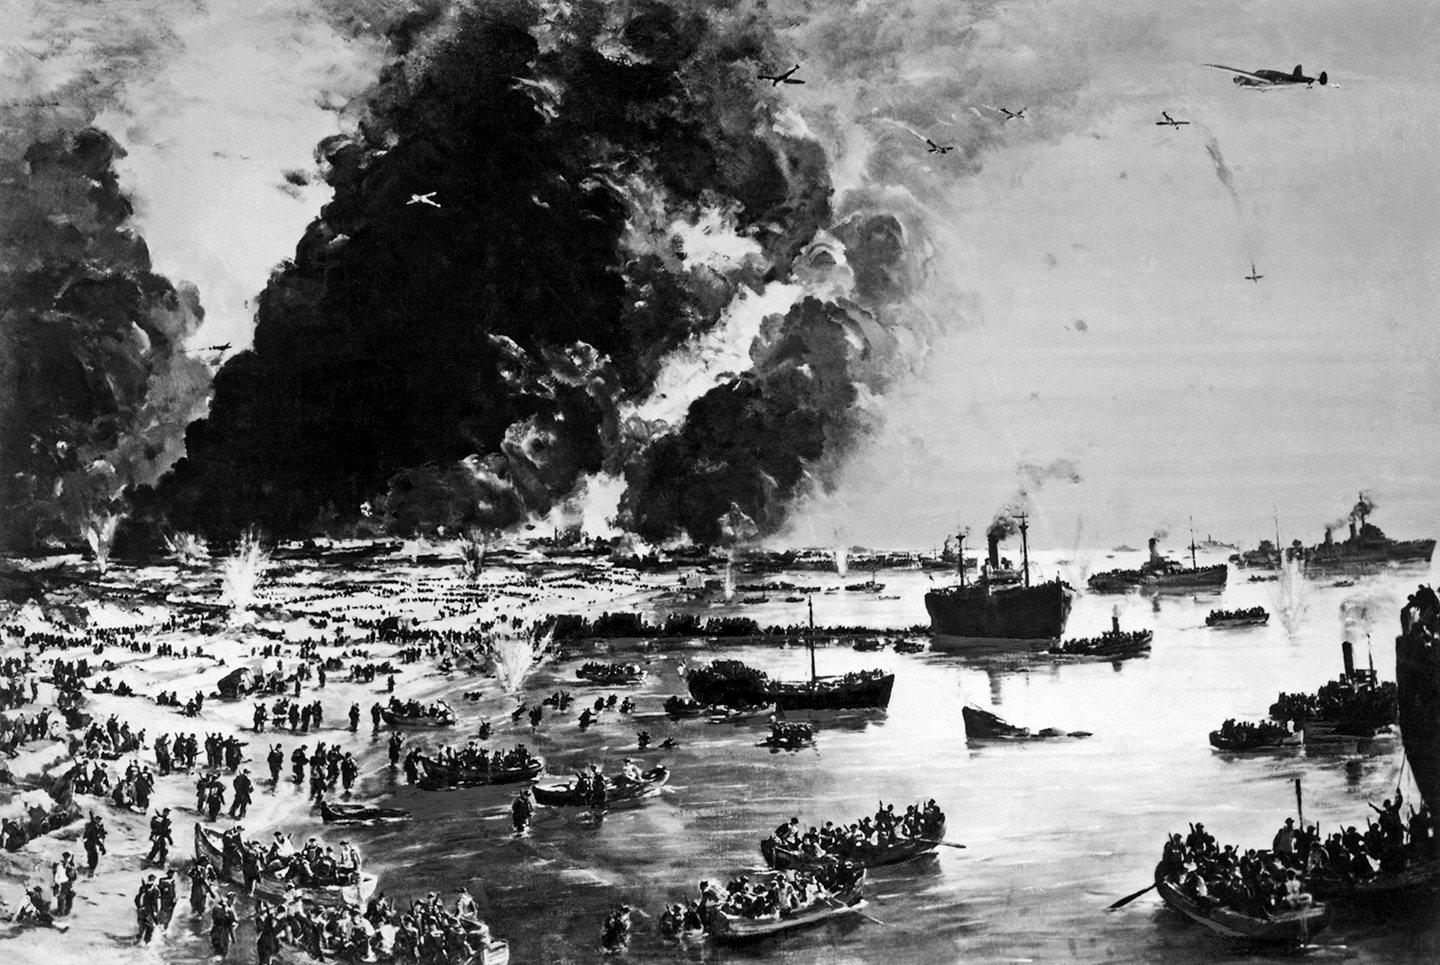 Battle of Dunkirk photos